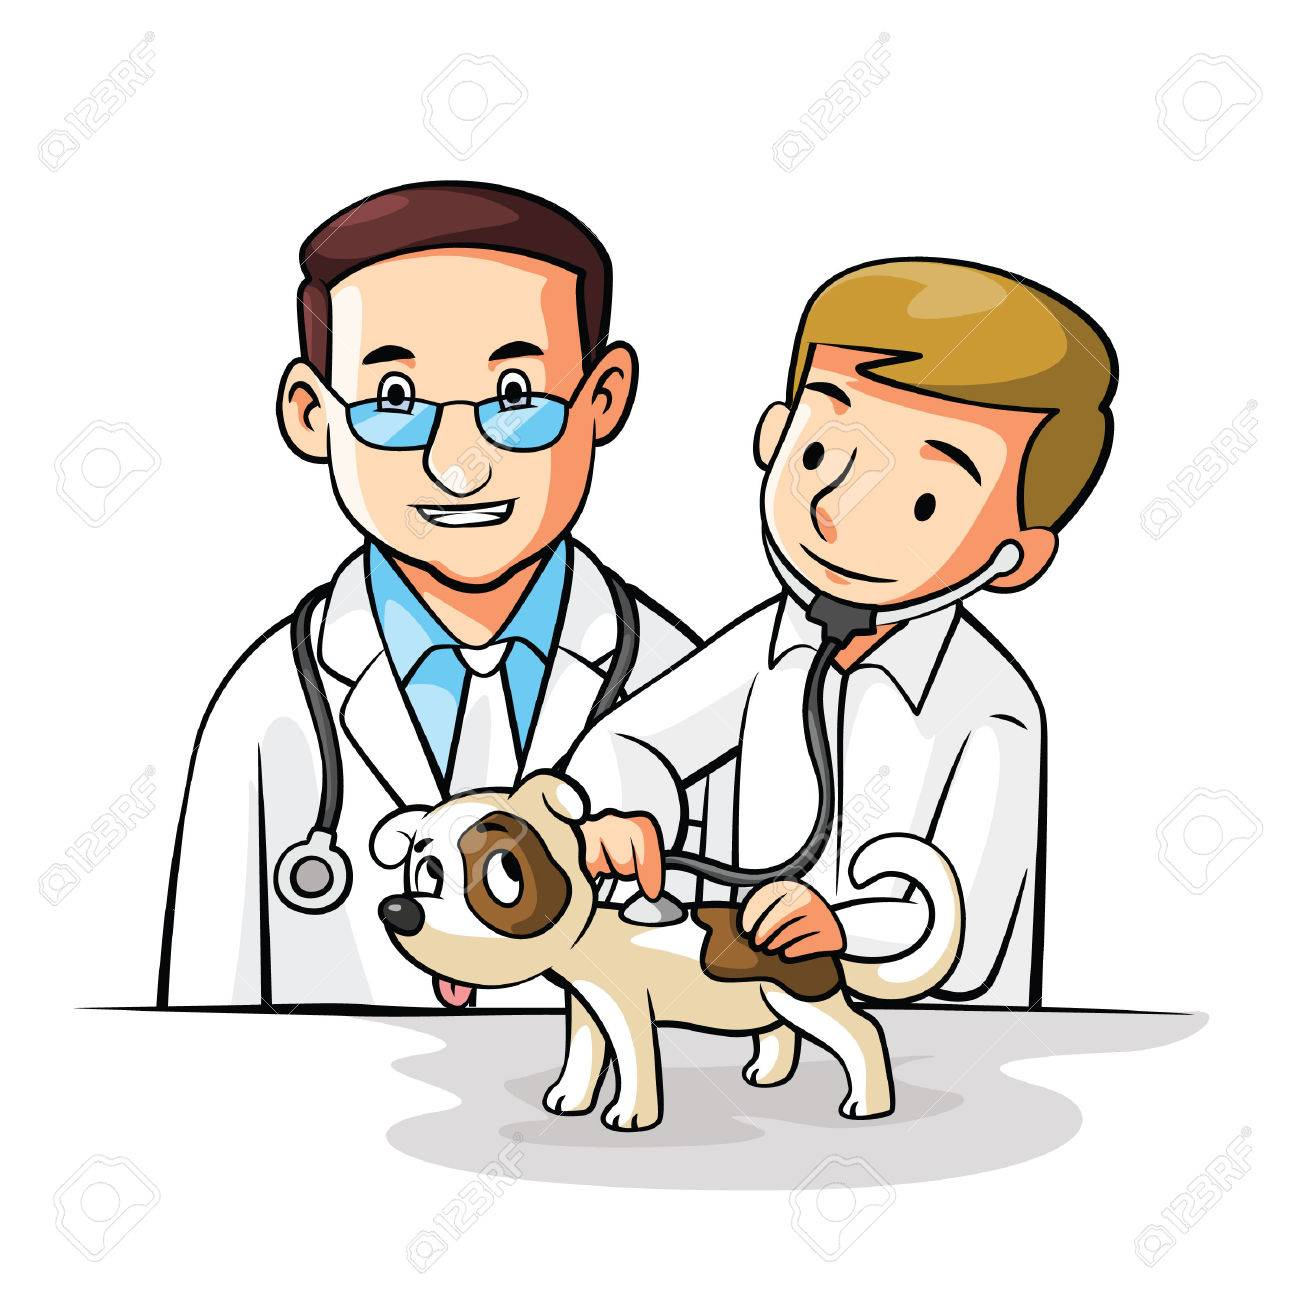 pet doctor royalty free cliparts vectors and stock illustration rh 123rf com veterinarian clipart free veterinary clip art free